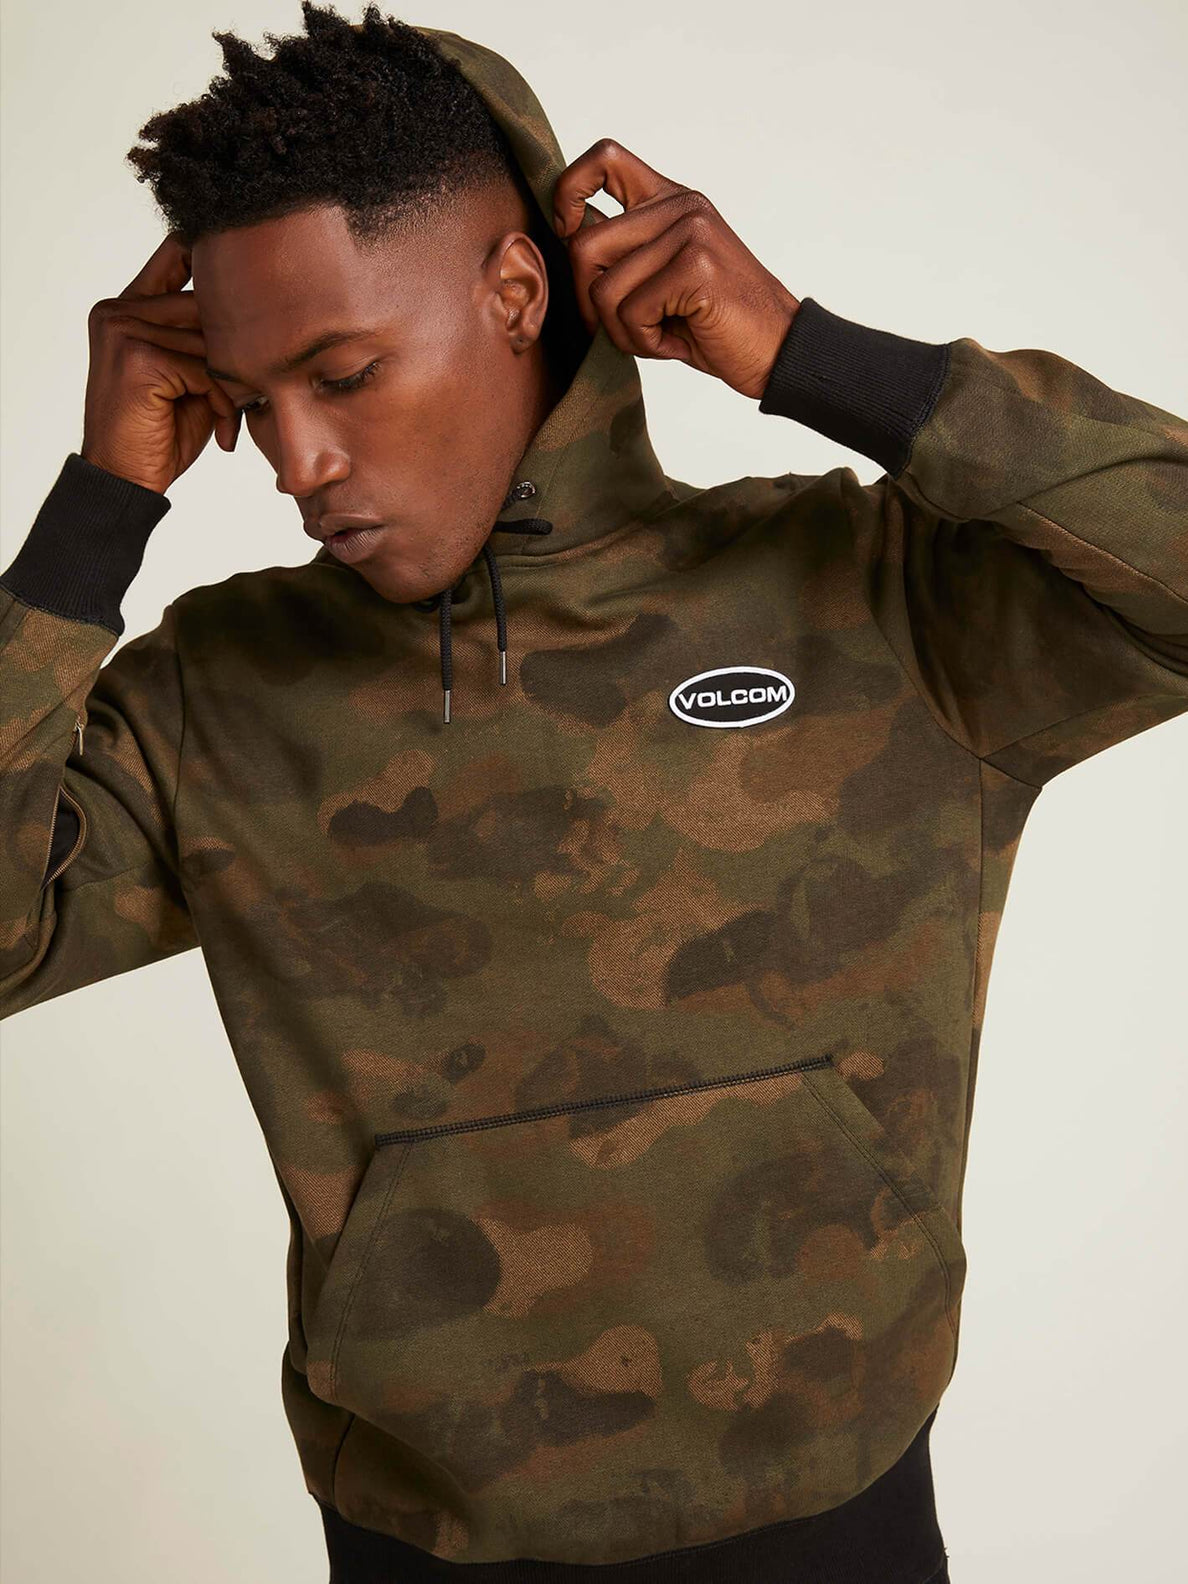 Shop Pullover Hoodie In Camouflage, Second Alternate View